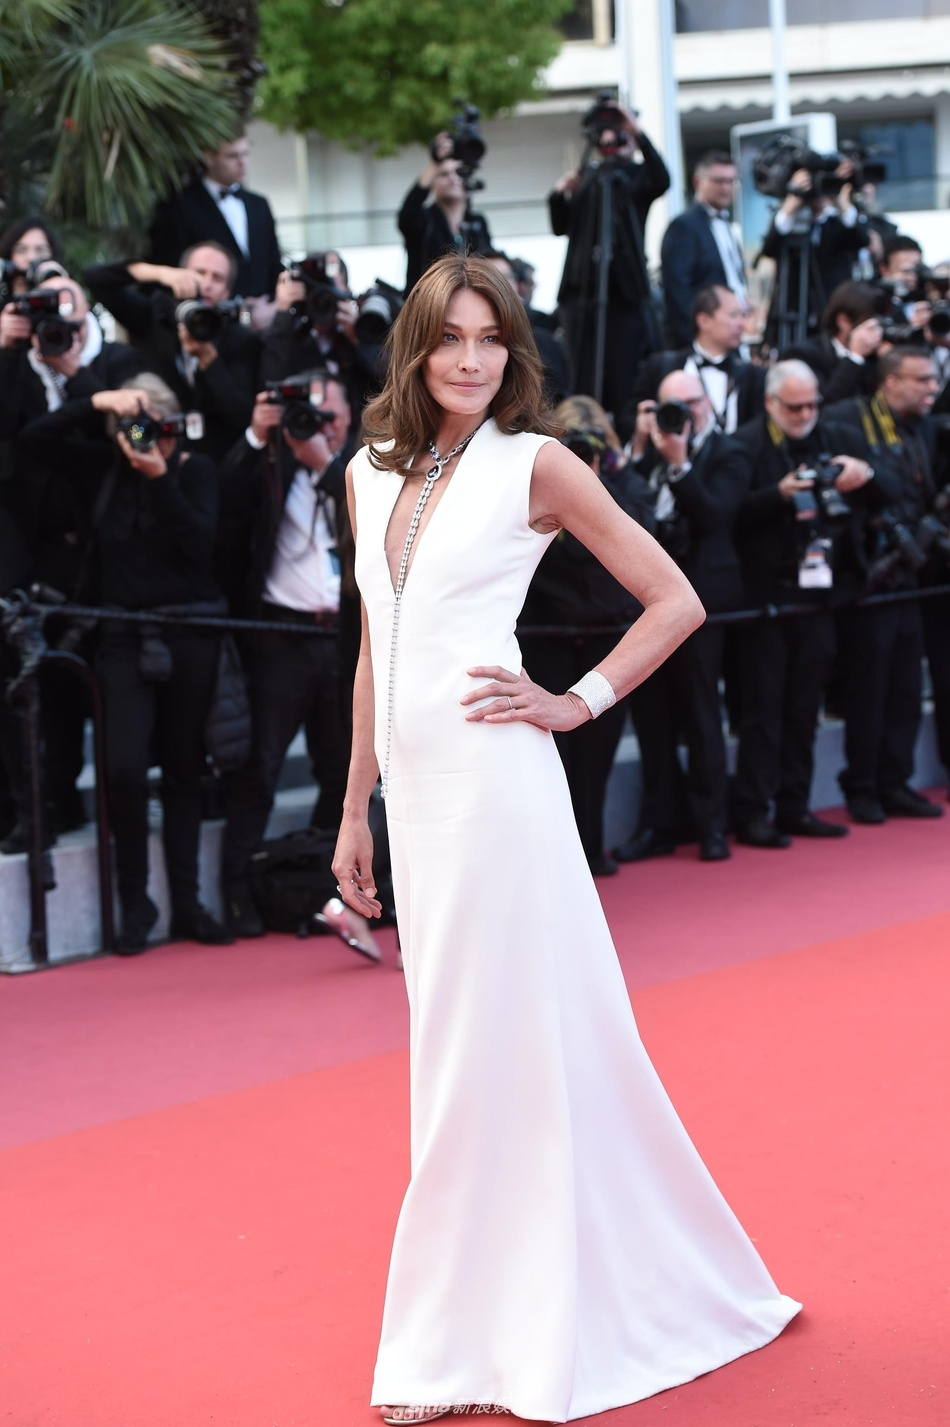 Tham do Cannes anh 9